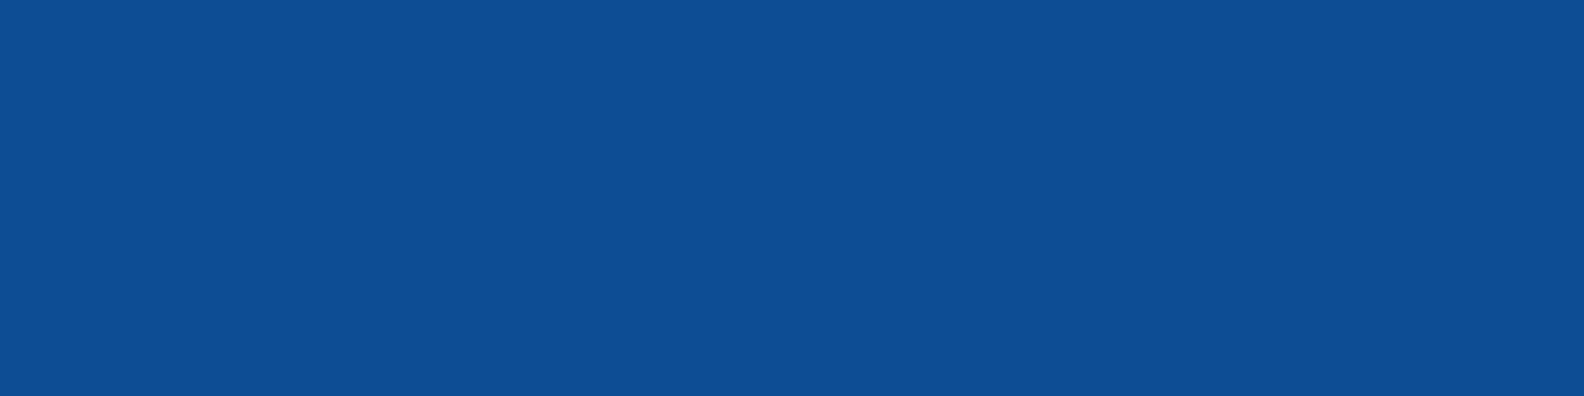 1584x396 Yale Blue Solid Color Background